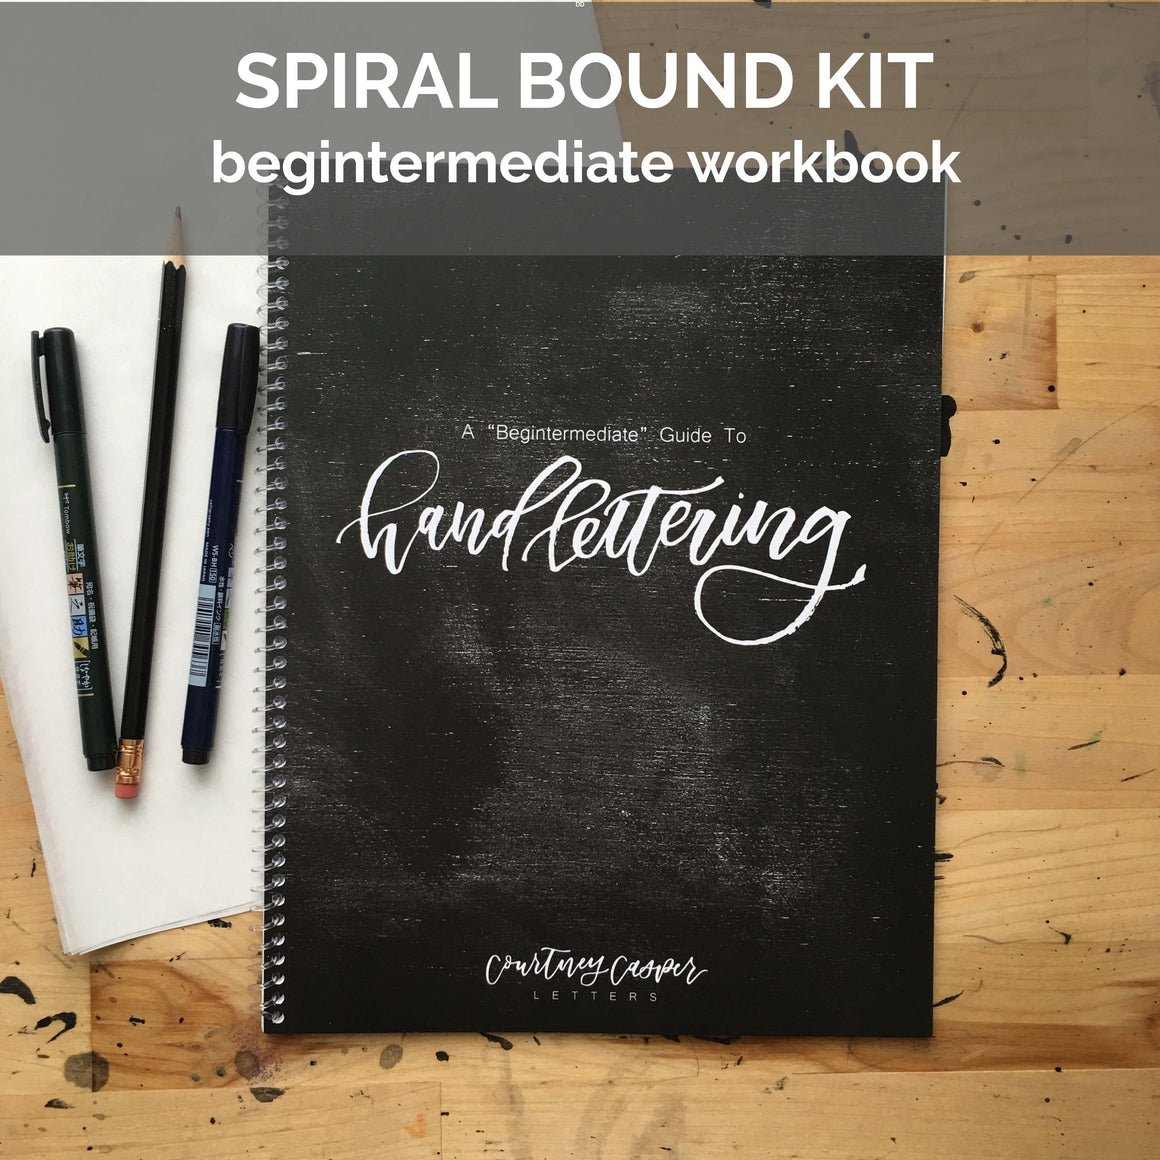 Begintermediate Workbook Spiral Bound Kit